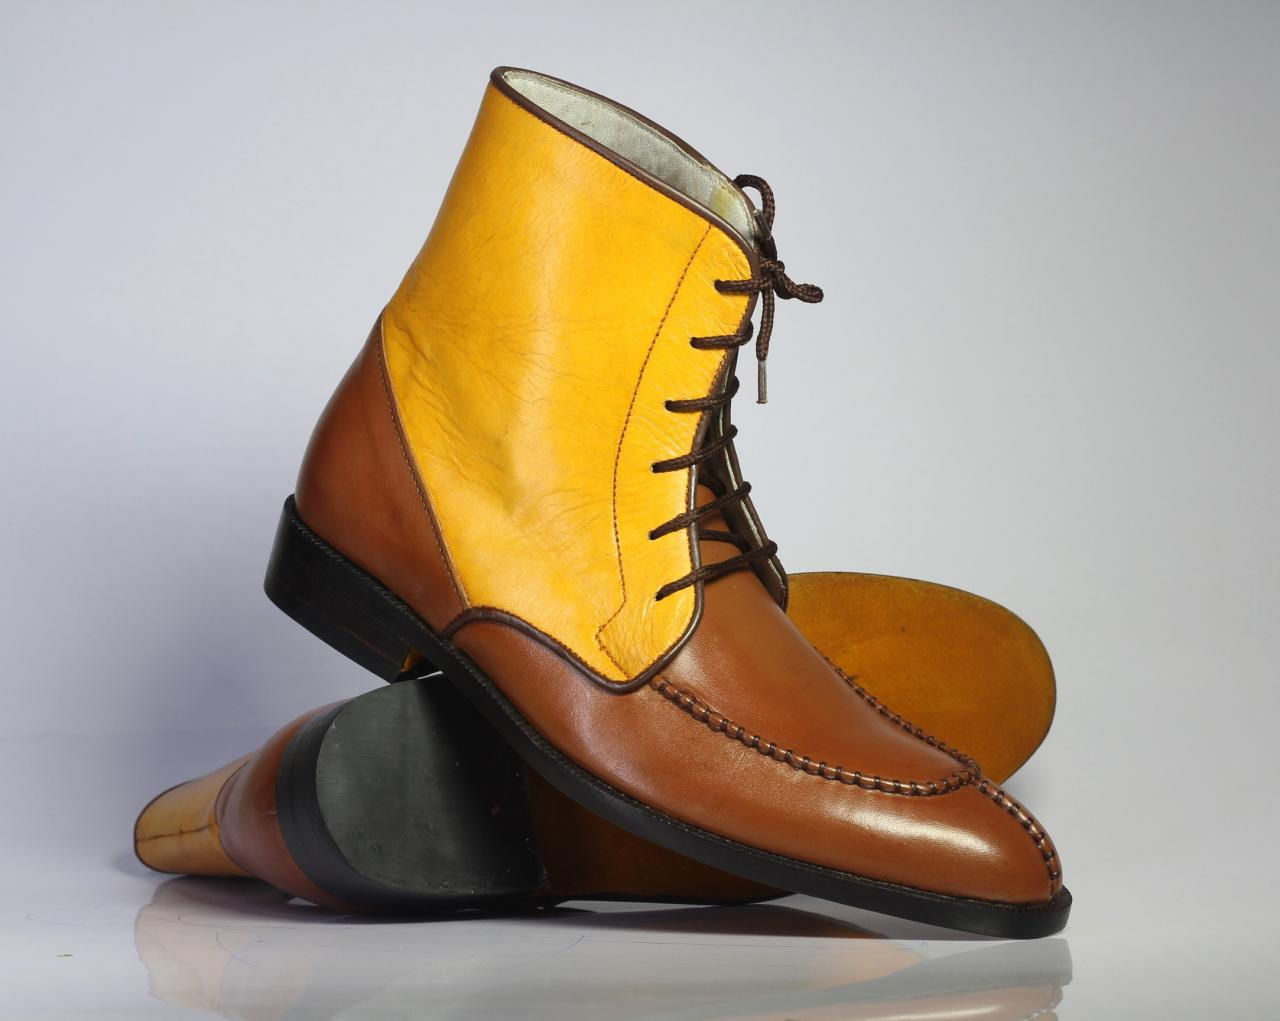 Handmade Ankle High Brown & Yellow Split Toe Leather Lace Up Boots For Men's